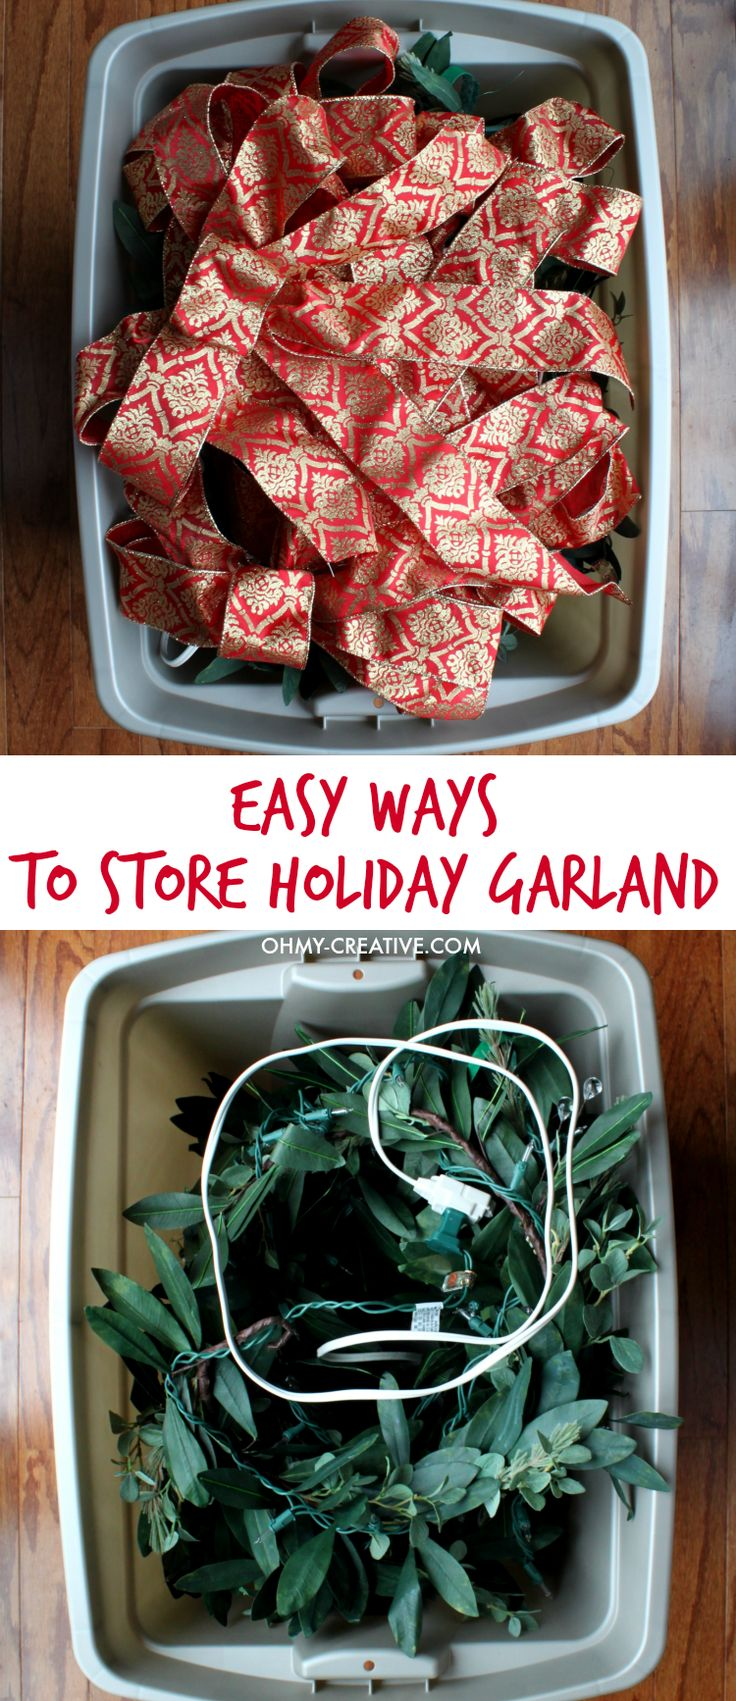 Storage For Christmas Decorations 17 Best Images About Christmas Storage On Pinterest Popcorn Tins